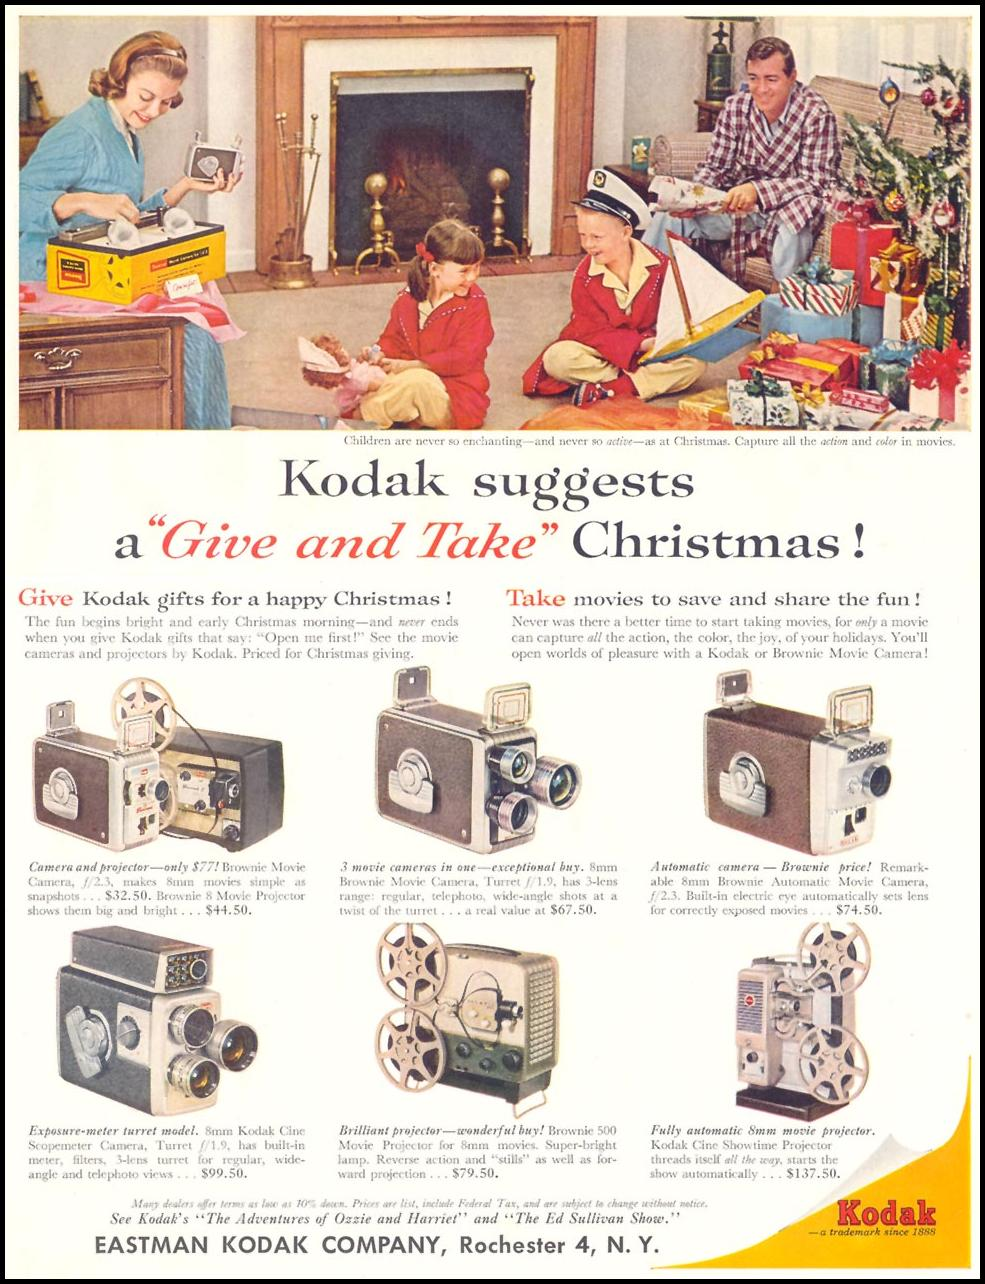 KODAK BROWNIE MOVIE CAMERAS LIFE 12/14/1959 p. 83